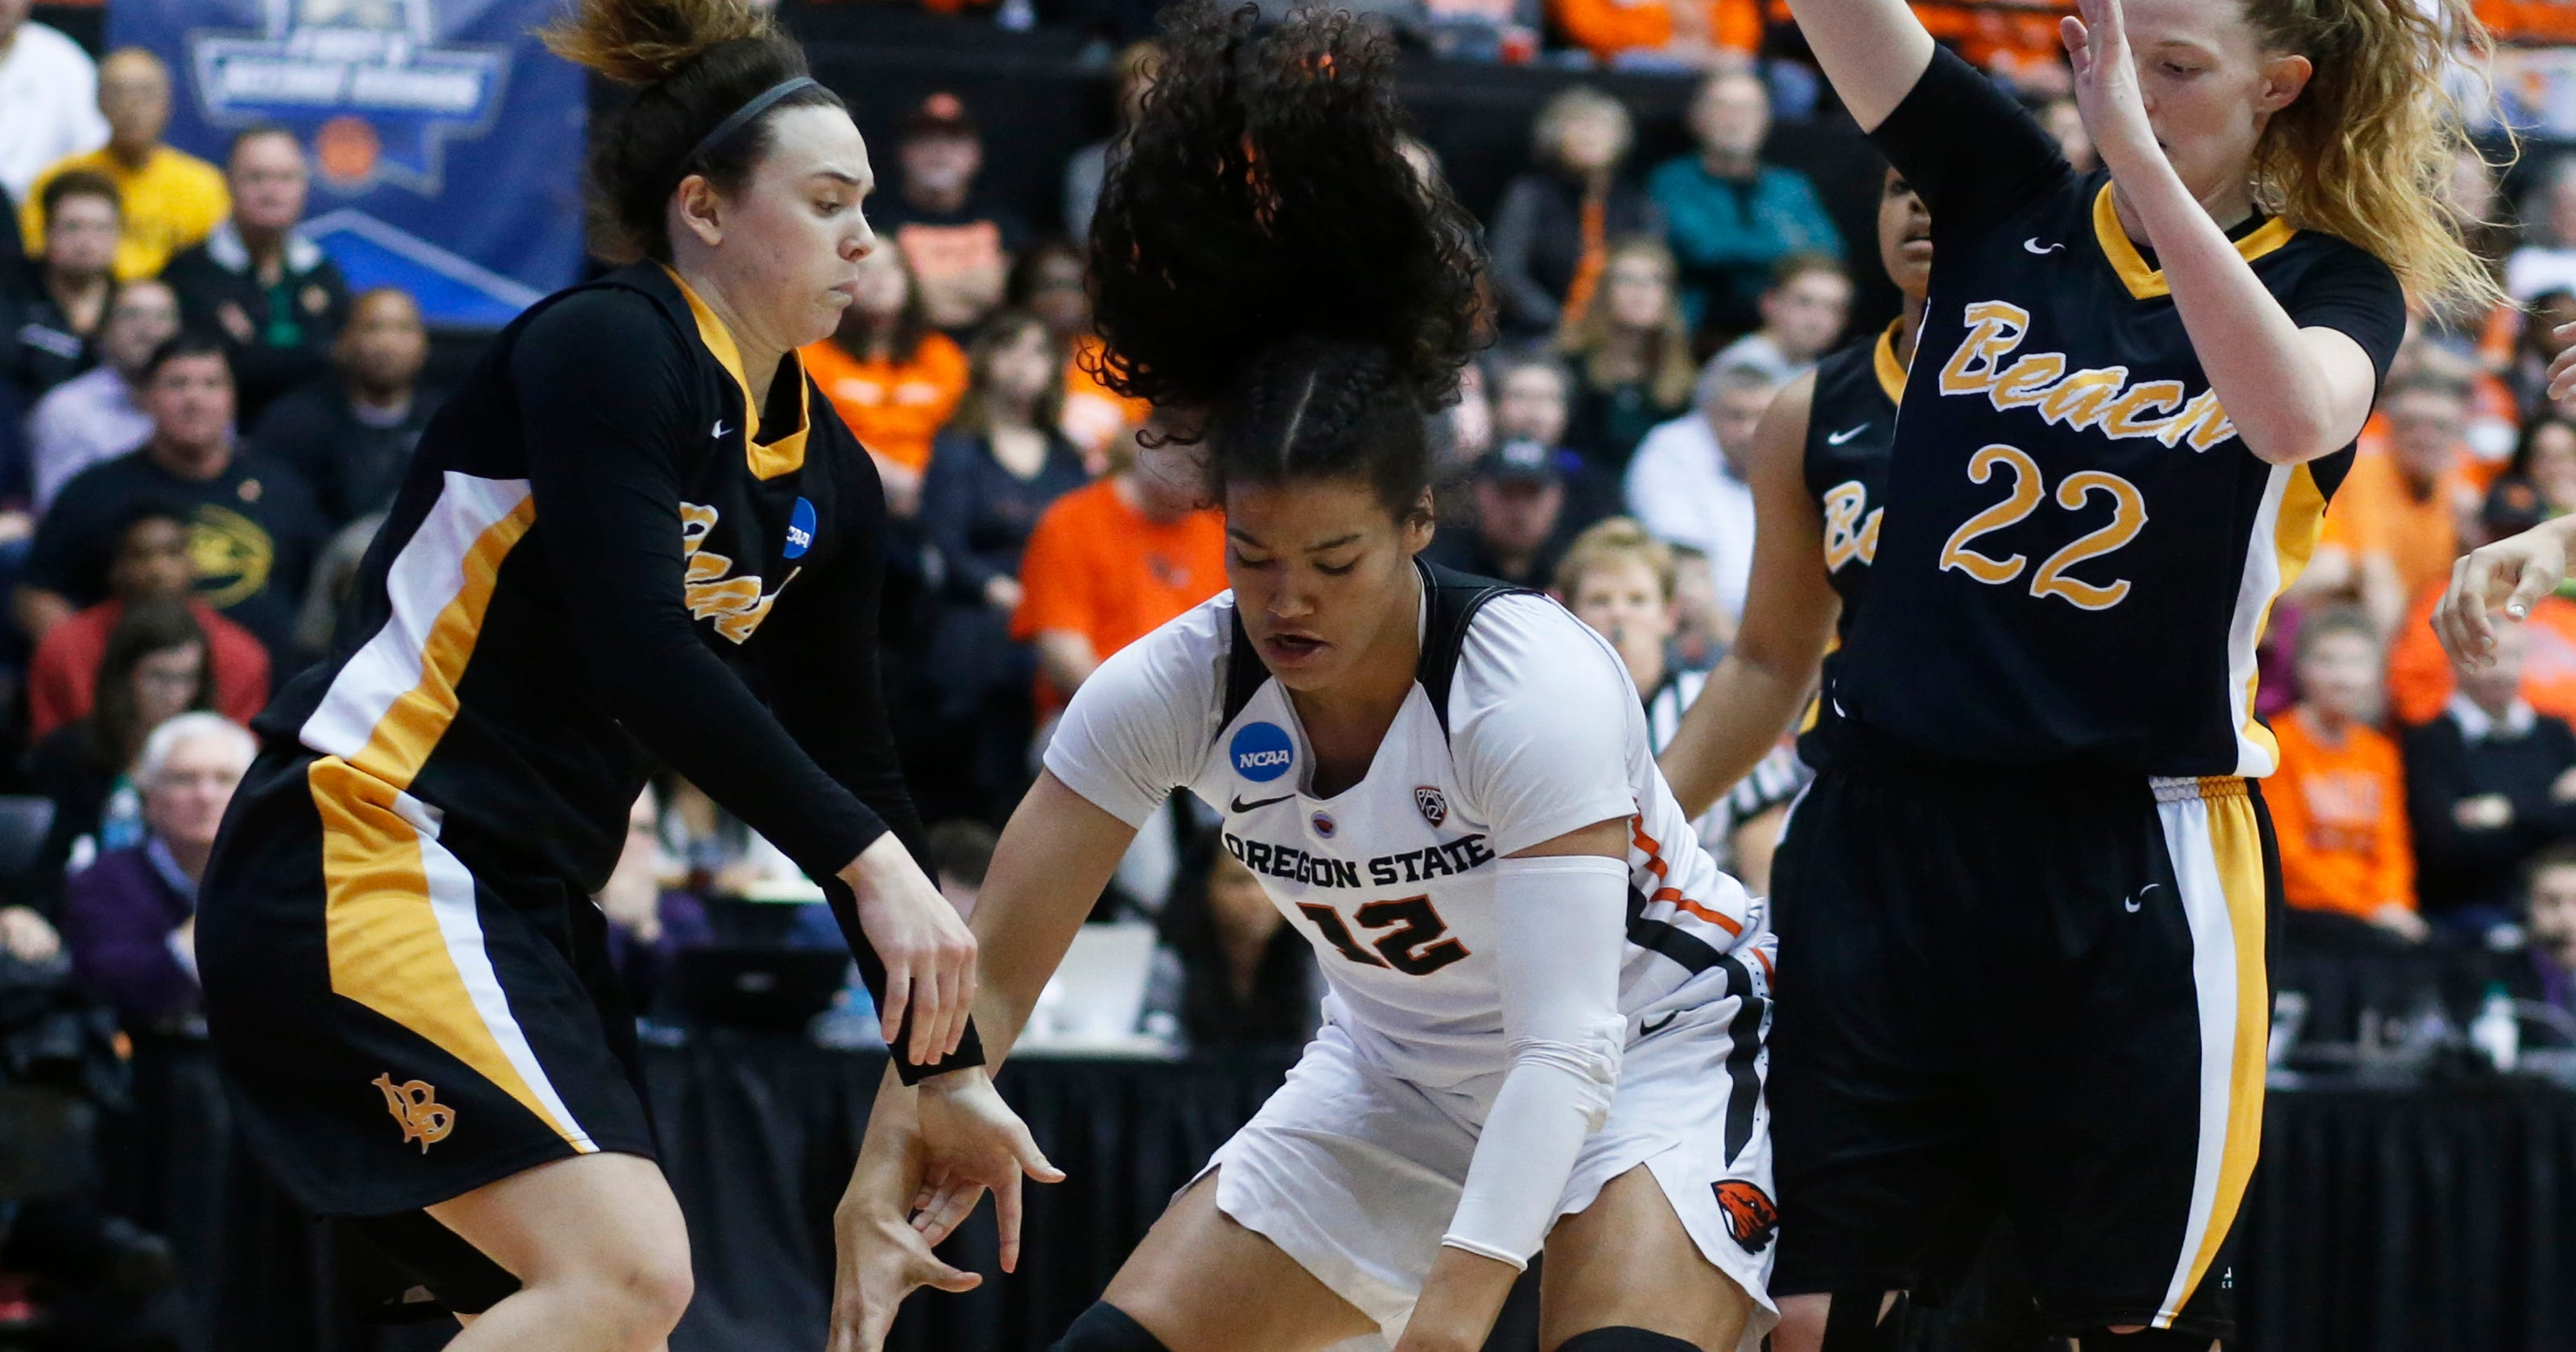 edec26efb Second-seeded Oregon State survives Long Beach State 56-55